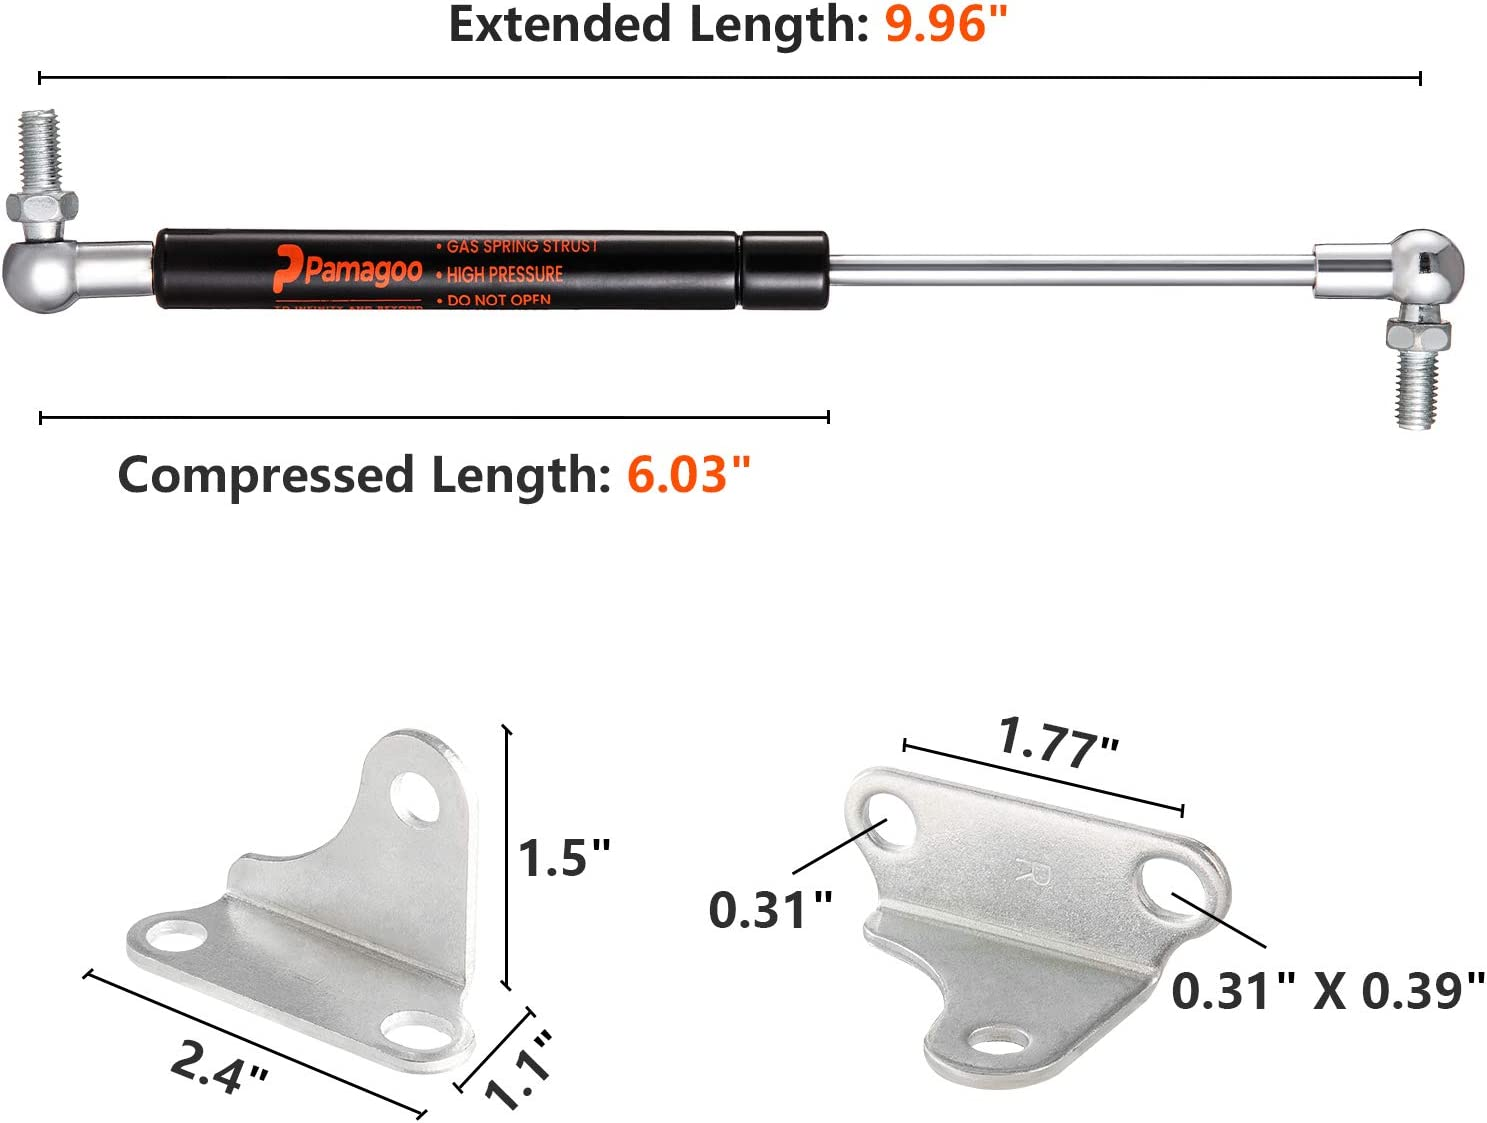 35Lb//155N Per Lift Support with L-type Mounts for Cabinet Toy Box Toolbox Bench Lids Trash Bin Dog House Door by Pamagoo 15 Gas Spring Struts